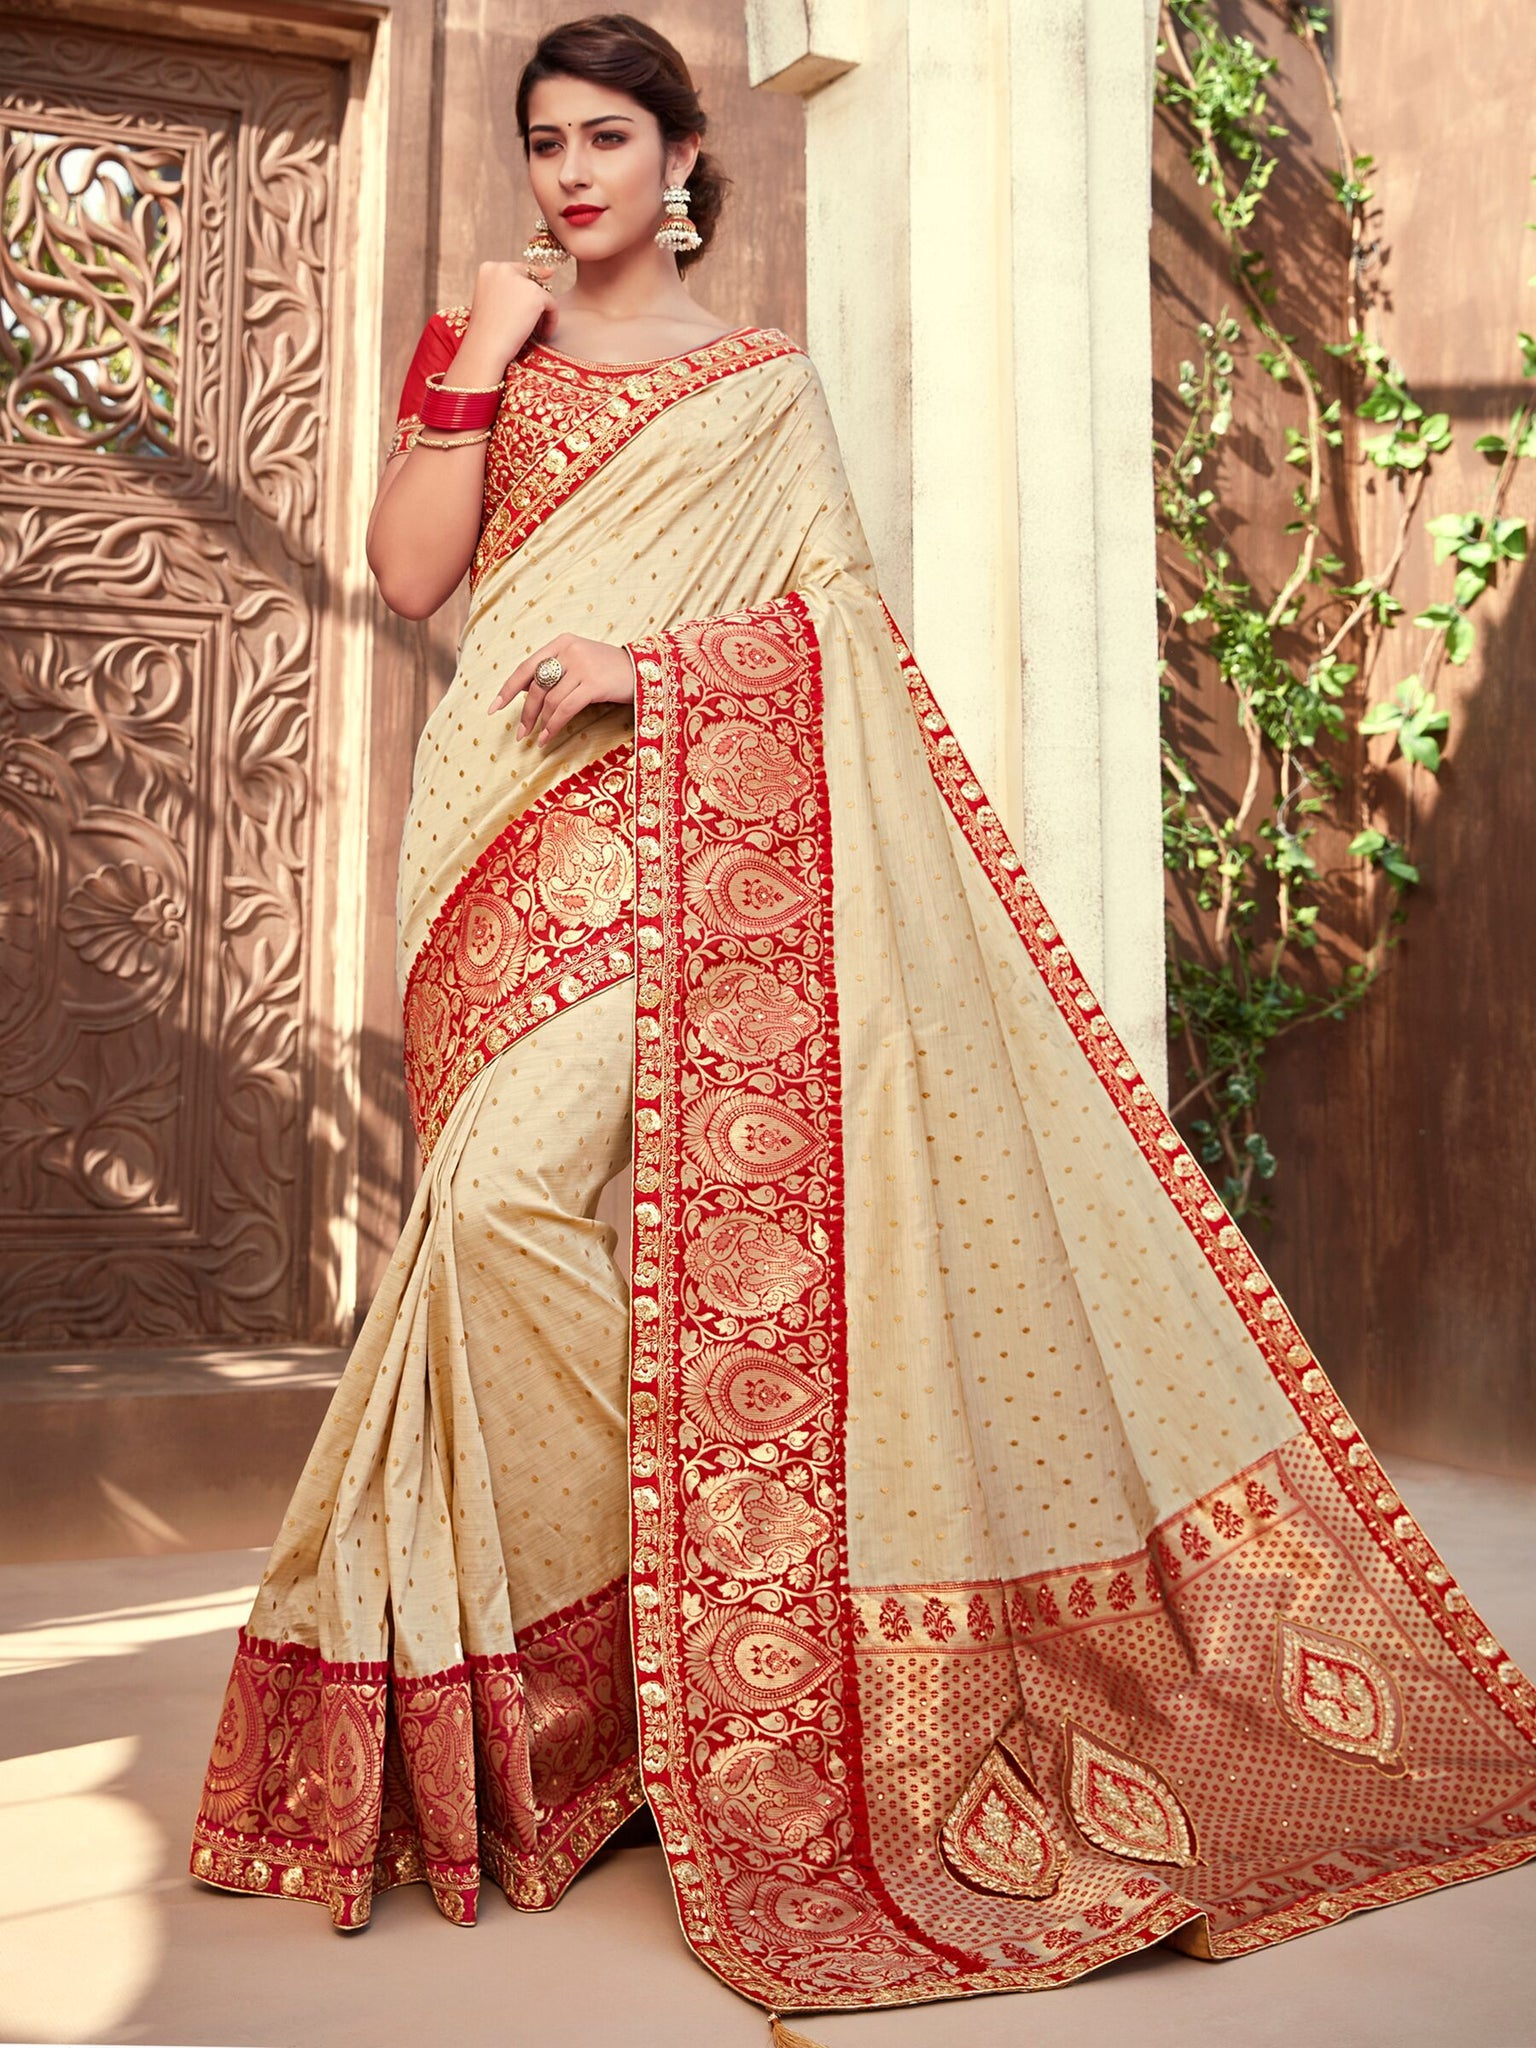 Festive NJ10176 Splendid Off-White Golden Red Silk Jacquard Saree - Fashion Nation